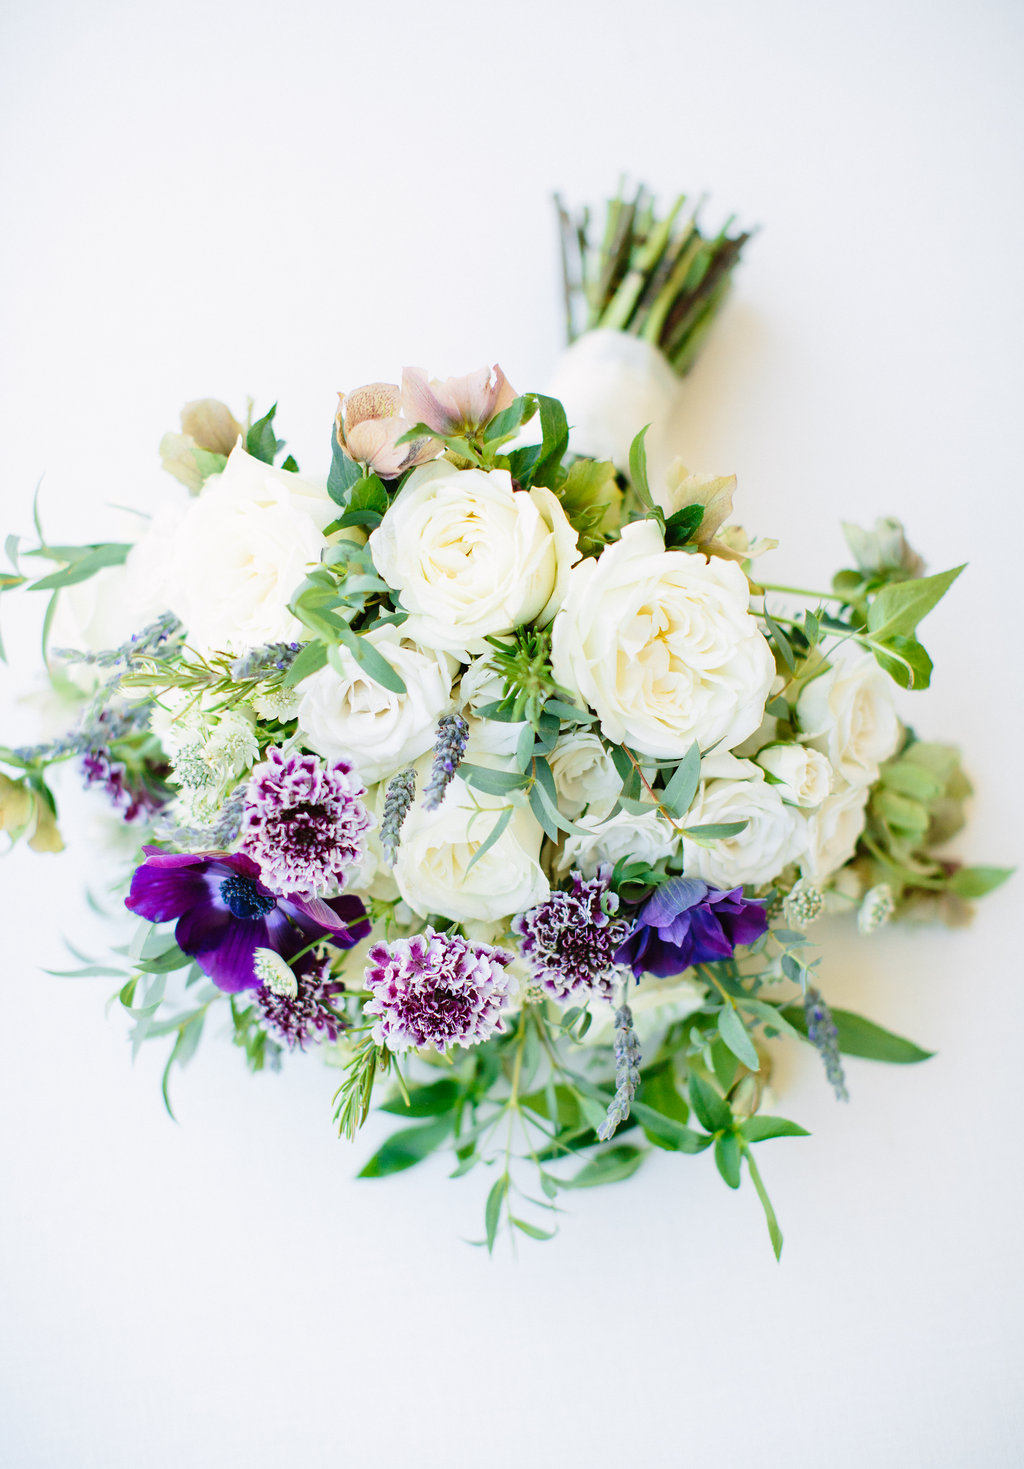 Photography -  Birds of a Feather Photography   Bi-color Purple/White Scabiosa - Year Round  Purple Anemone - Spring/Fall/WInter  Lavender (the herb) - Spring/Summer/Fall  White Astrantia - Year Round  Purple/Green Hellebores - Spring/Winter  Rosemary - Year Round  White Garden Rose - Year Round